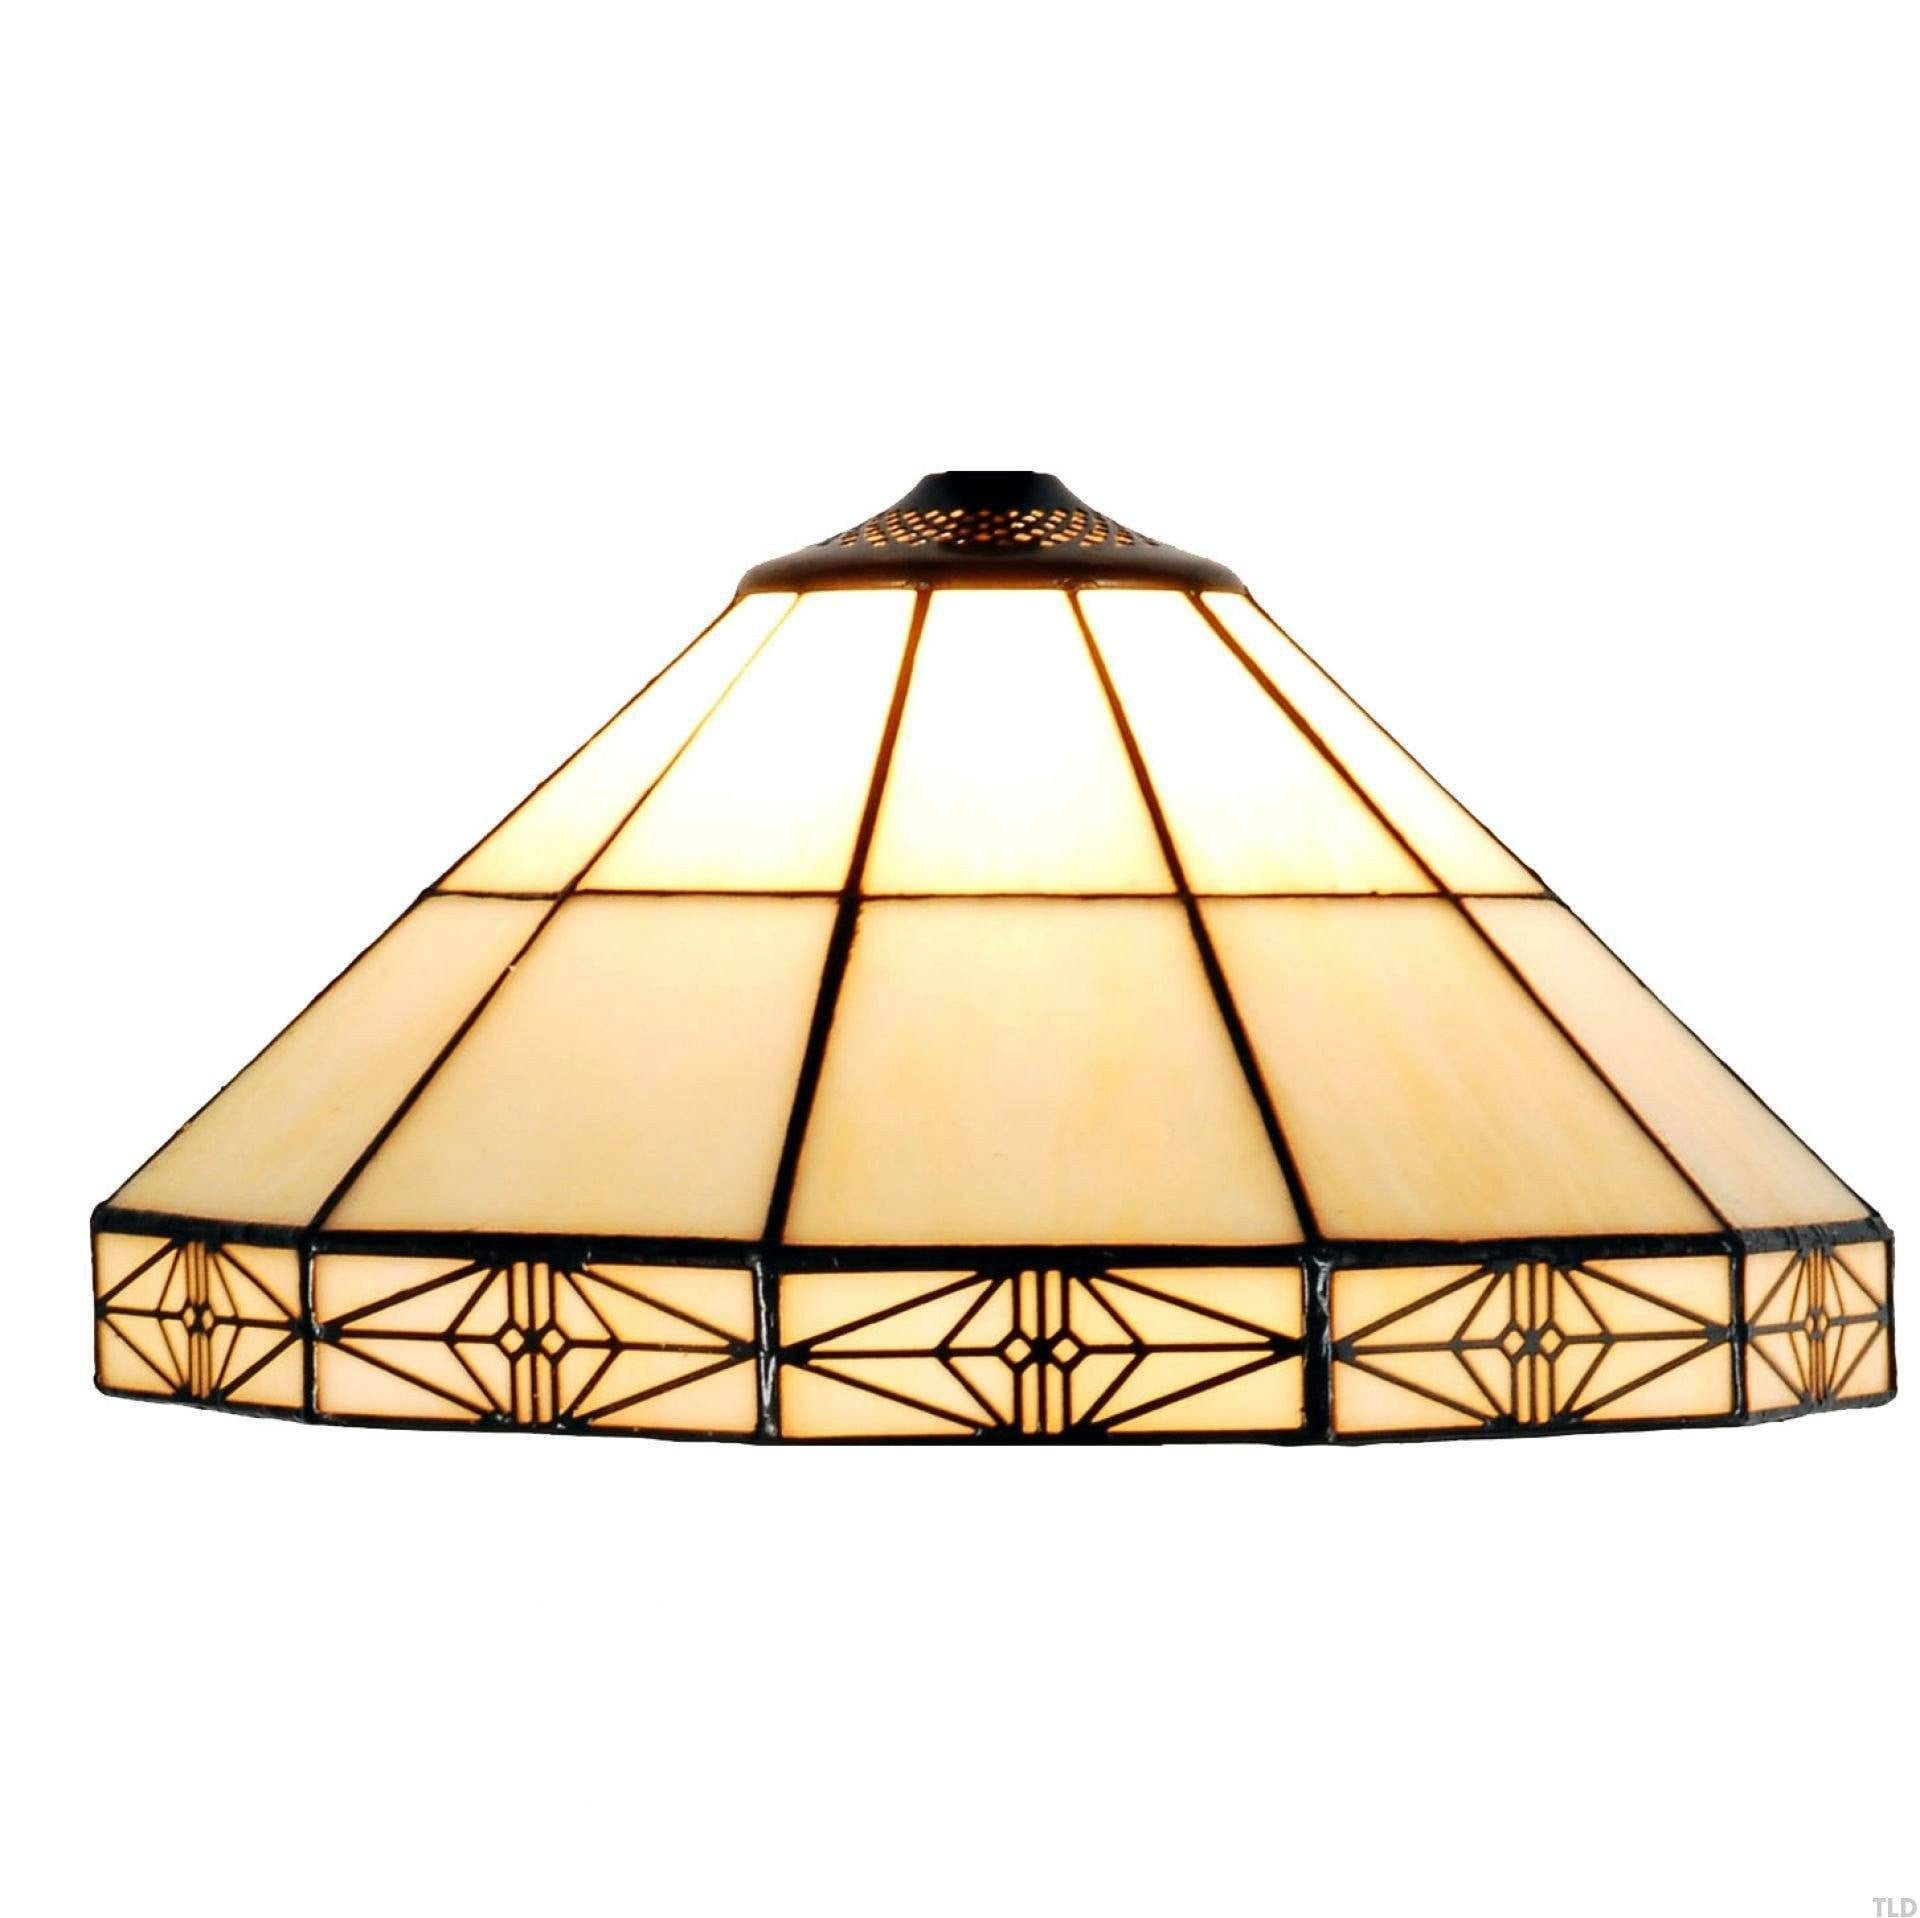 Tiffany Replacement Table Lamp Shades & Bases - Dorchester Medium Tiffany Replacement Table Lamp Shade